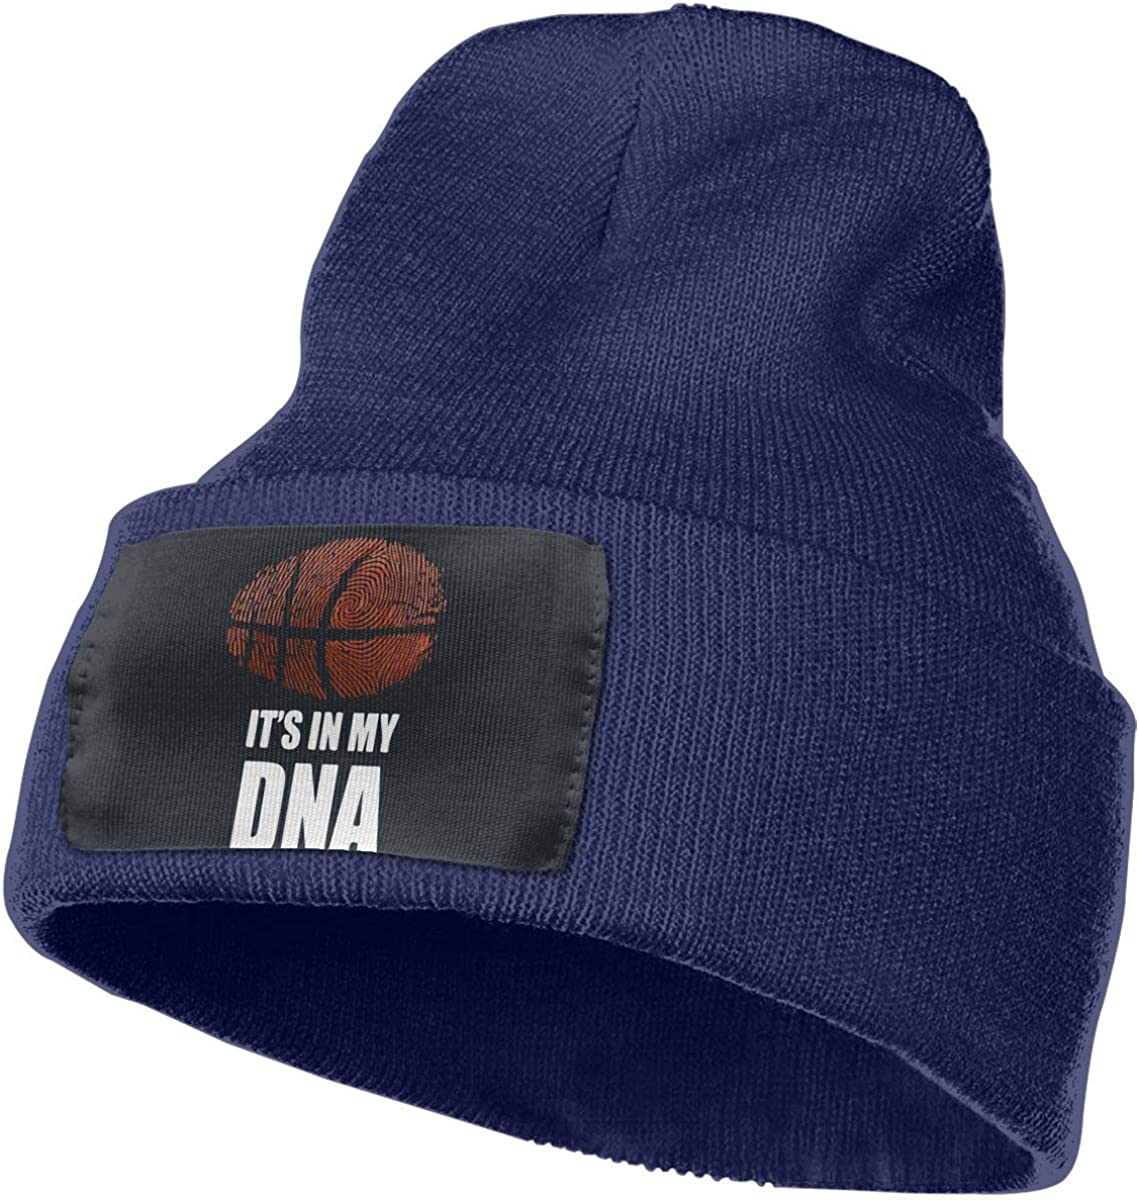 Basketball Its in My DNA Women and Men Skull Caps Winter Warm Stretchy Knitting Beanie Hats